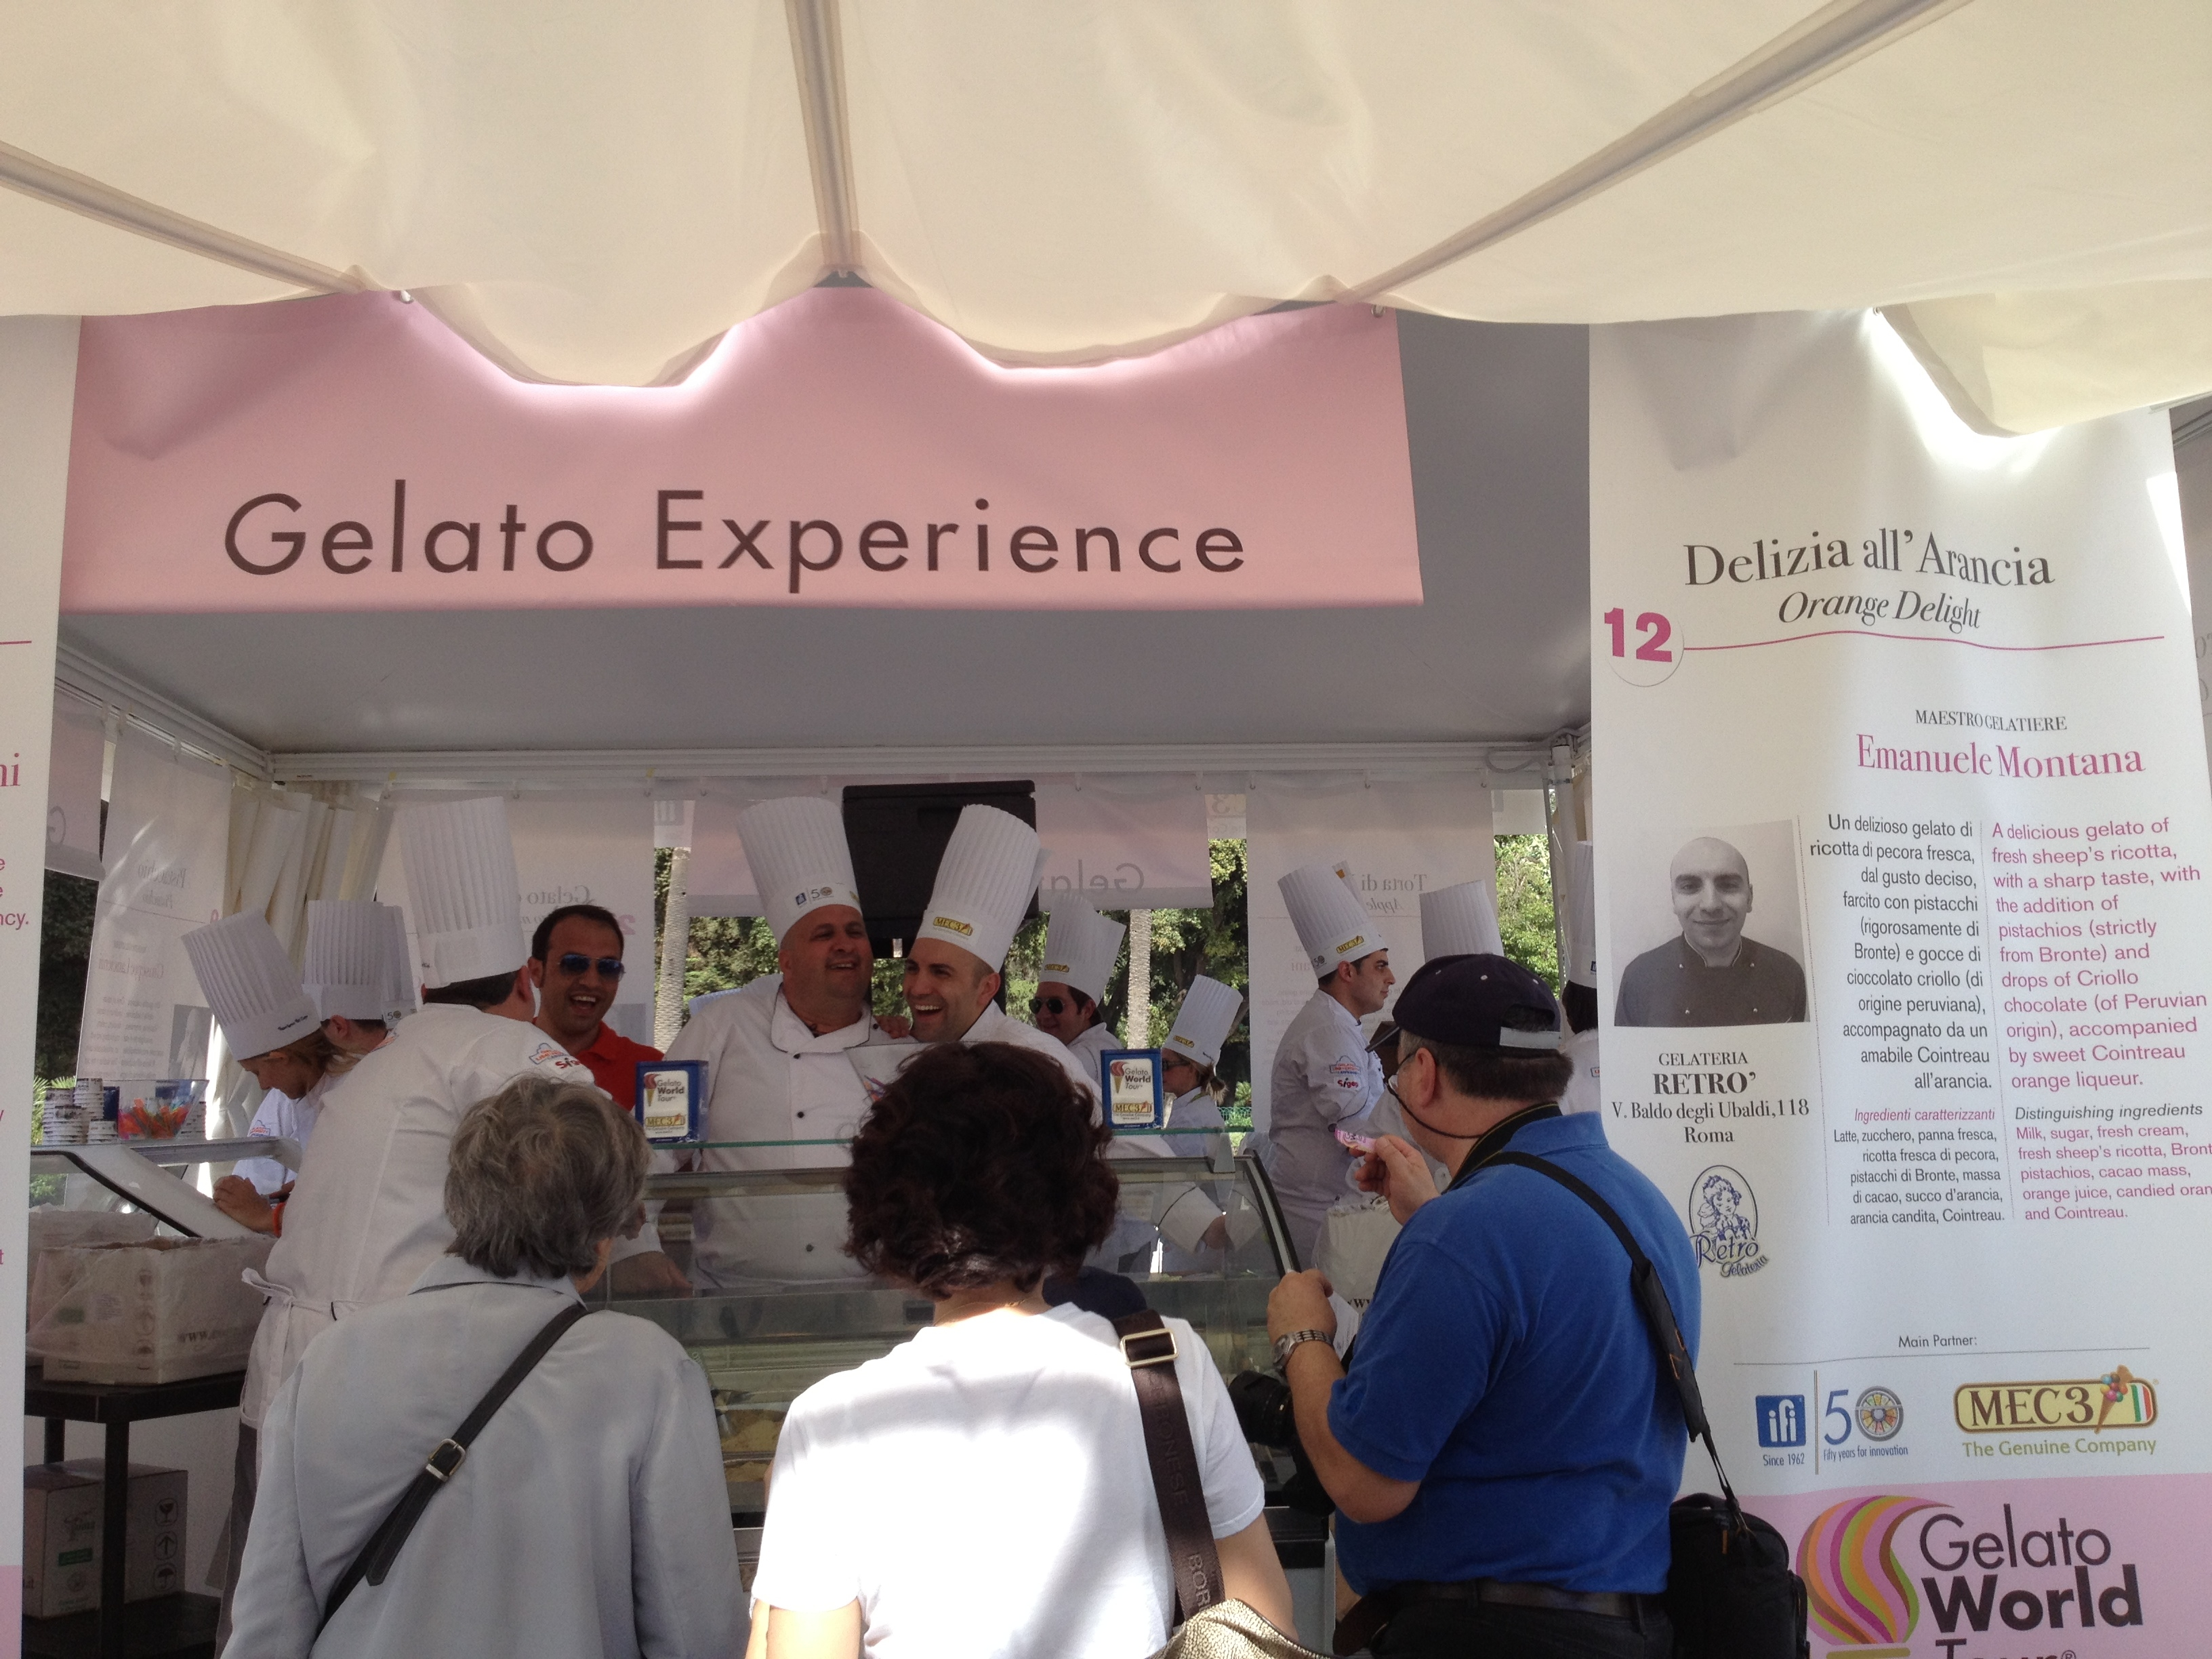 Don't Miss This Event! Gelato World Tour in Rome